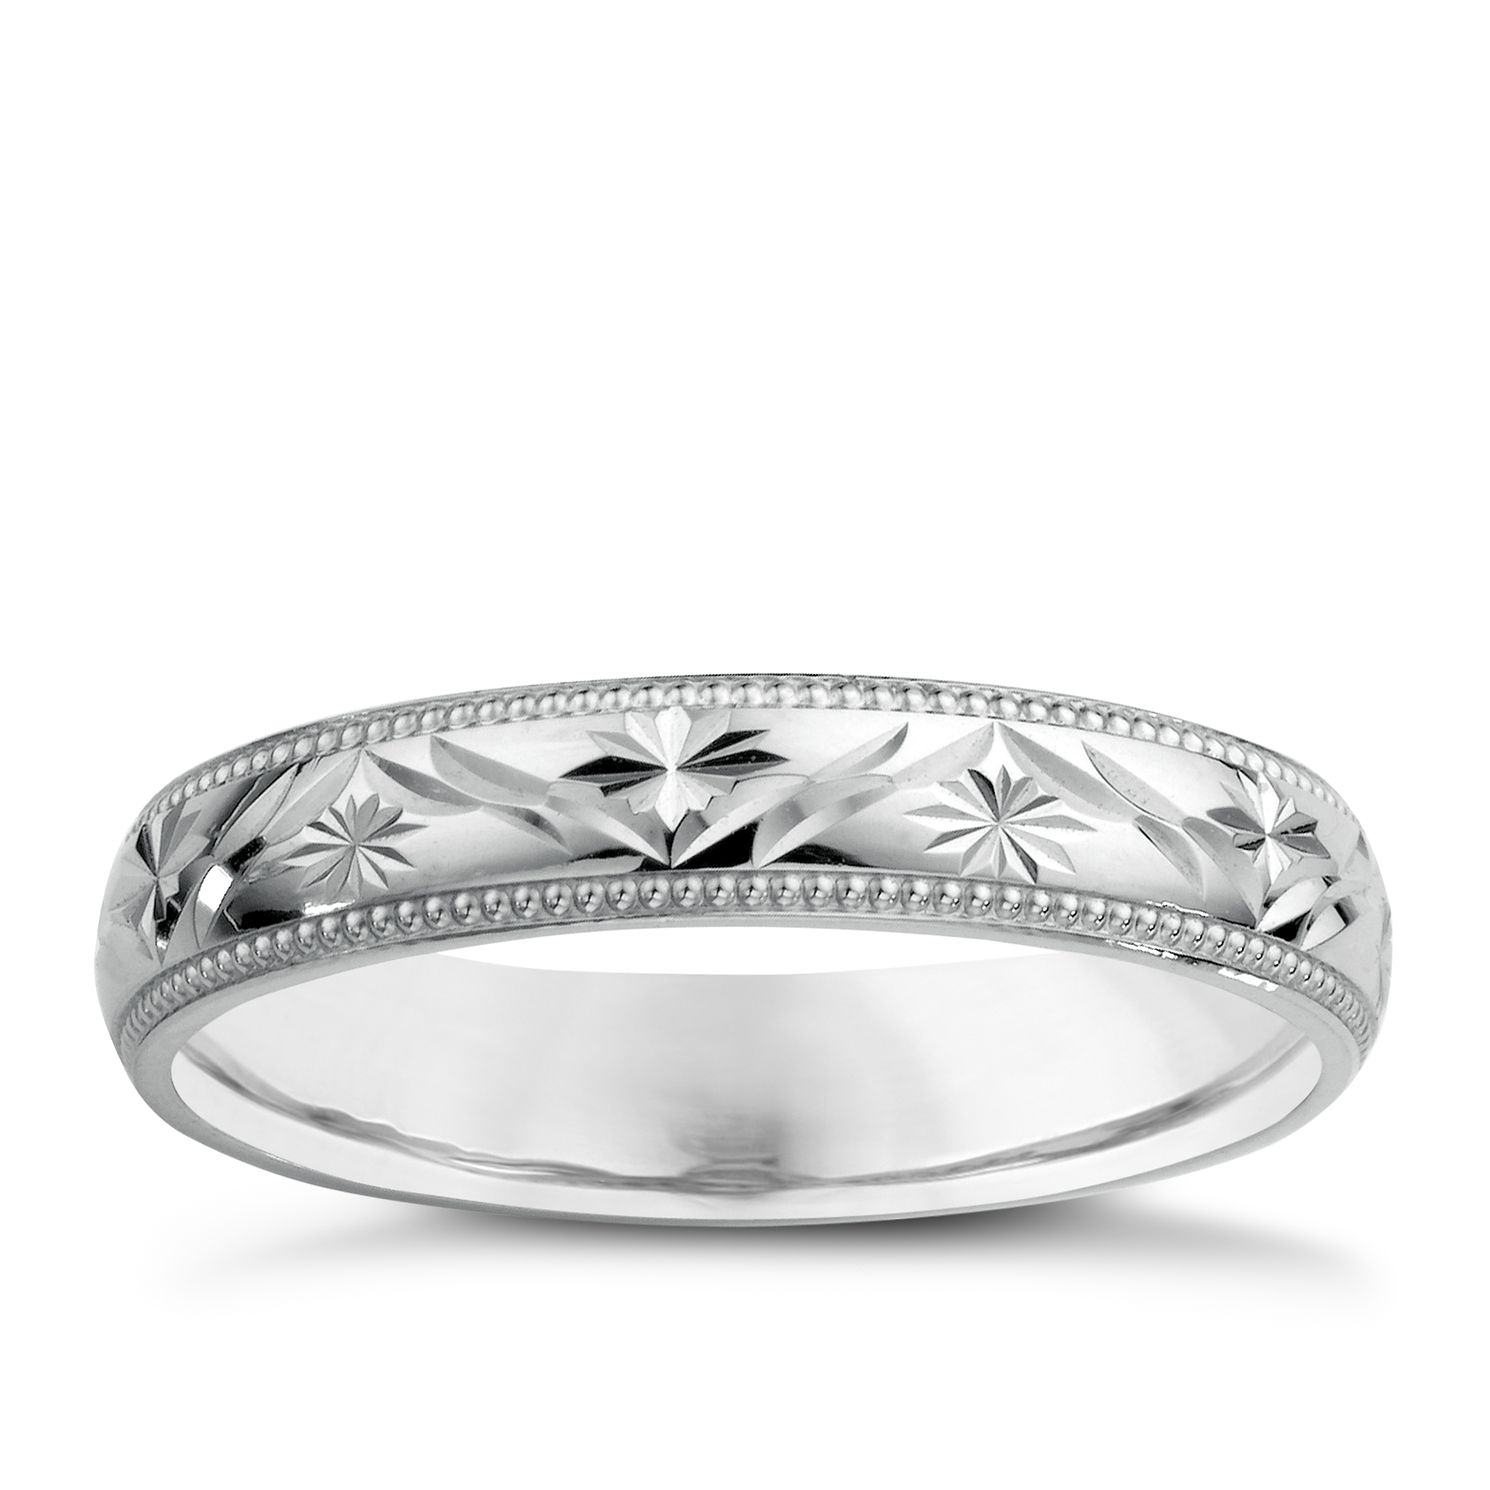 9ct White Gold Ladiesu0027 Patterned Wedding Ring   Product Number 3671771